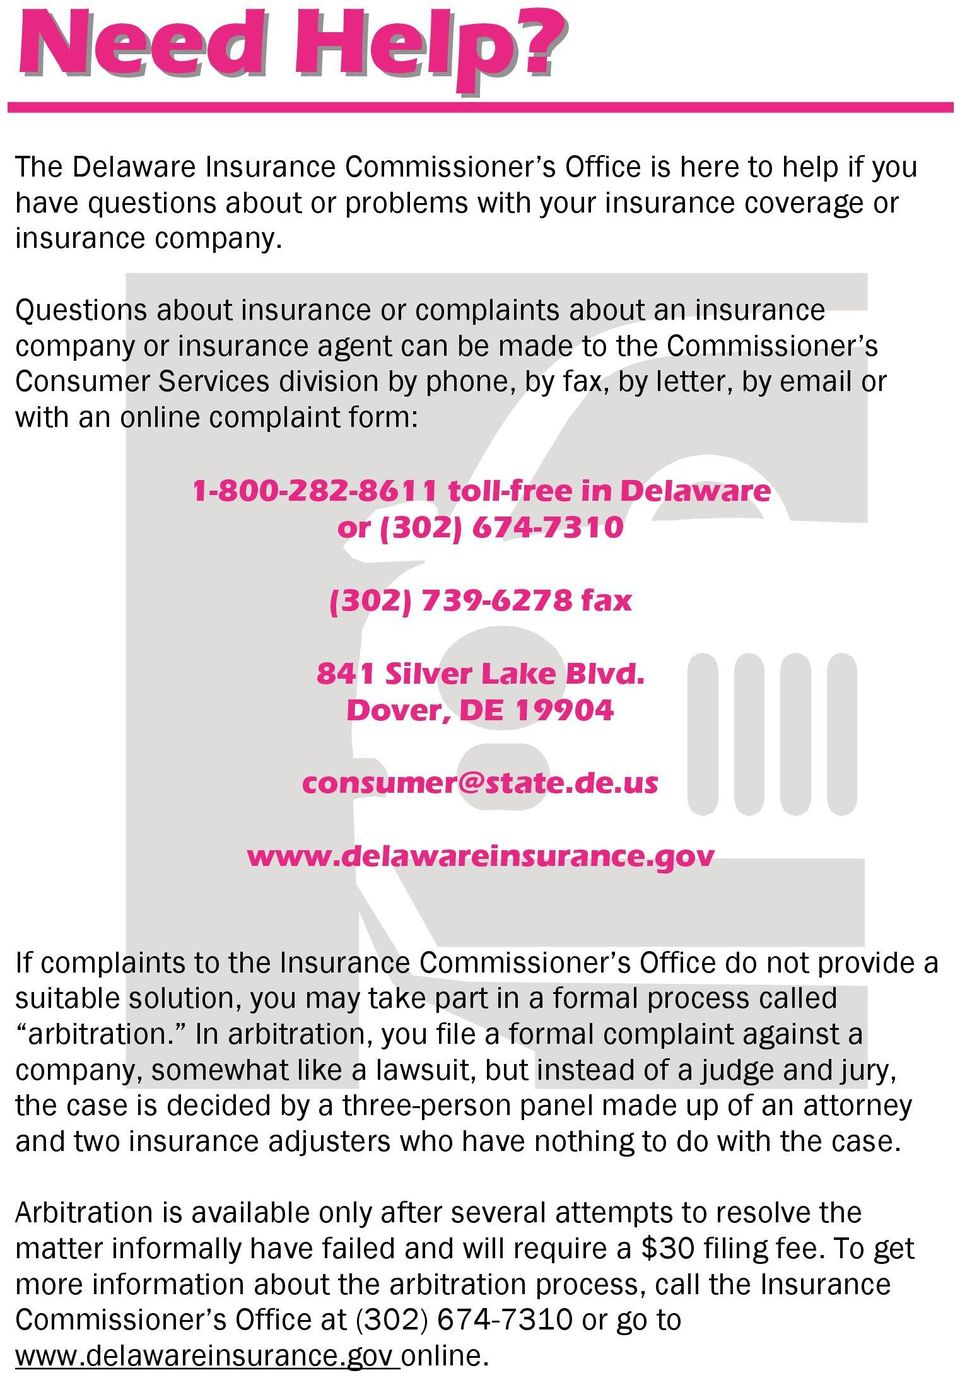 online complaint form: 1-800-282-8611 toll-free in Delaware or (302) 674-7310 (302) 739-6278 fax 841 Silver Lake Blvd. Dover, DE 19904 consumer@state.de.us www.delawareinsurance.